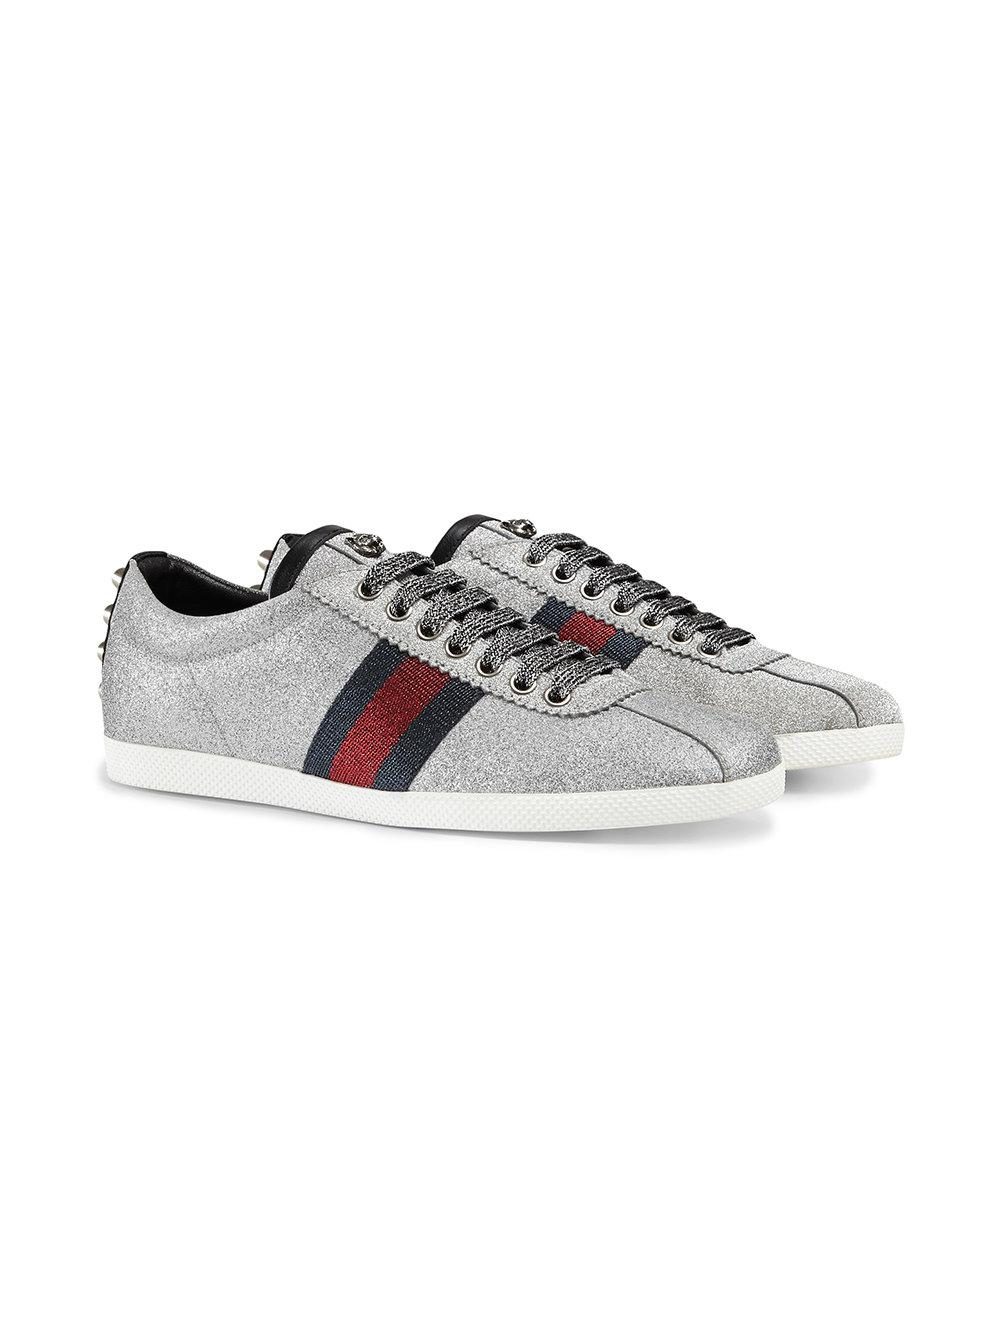 ee1c78e52ab Gucci - Gray Glitter Web Sneakers With Studs - Lyst. View fullscreen